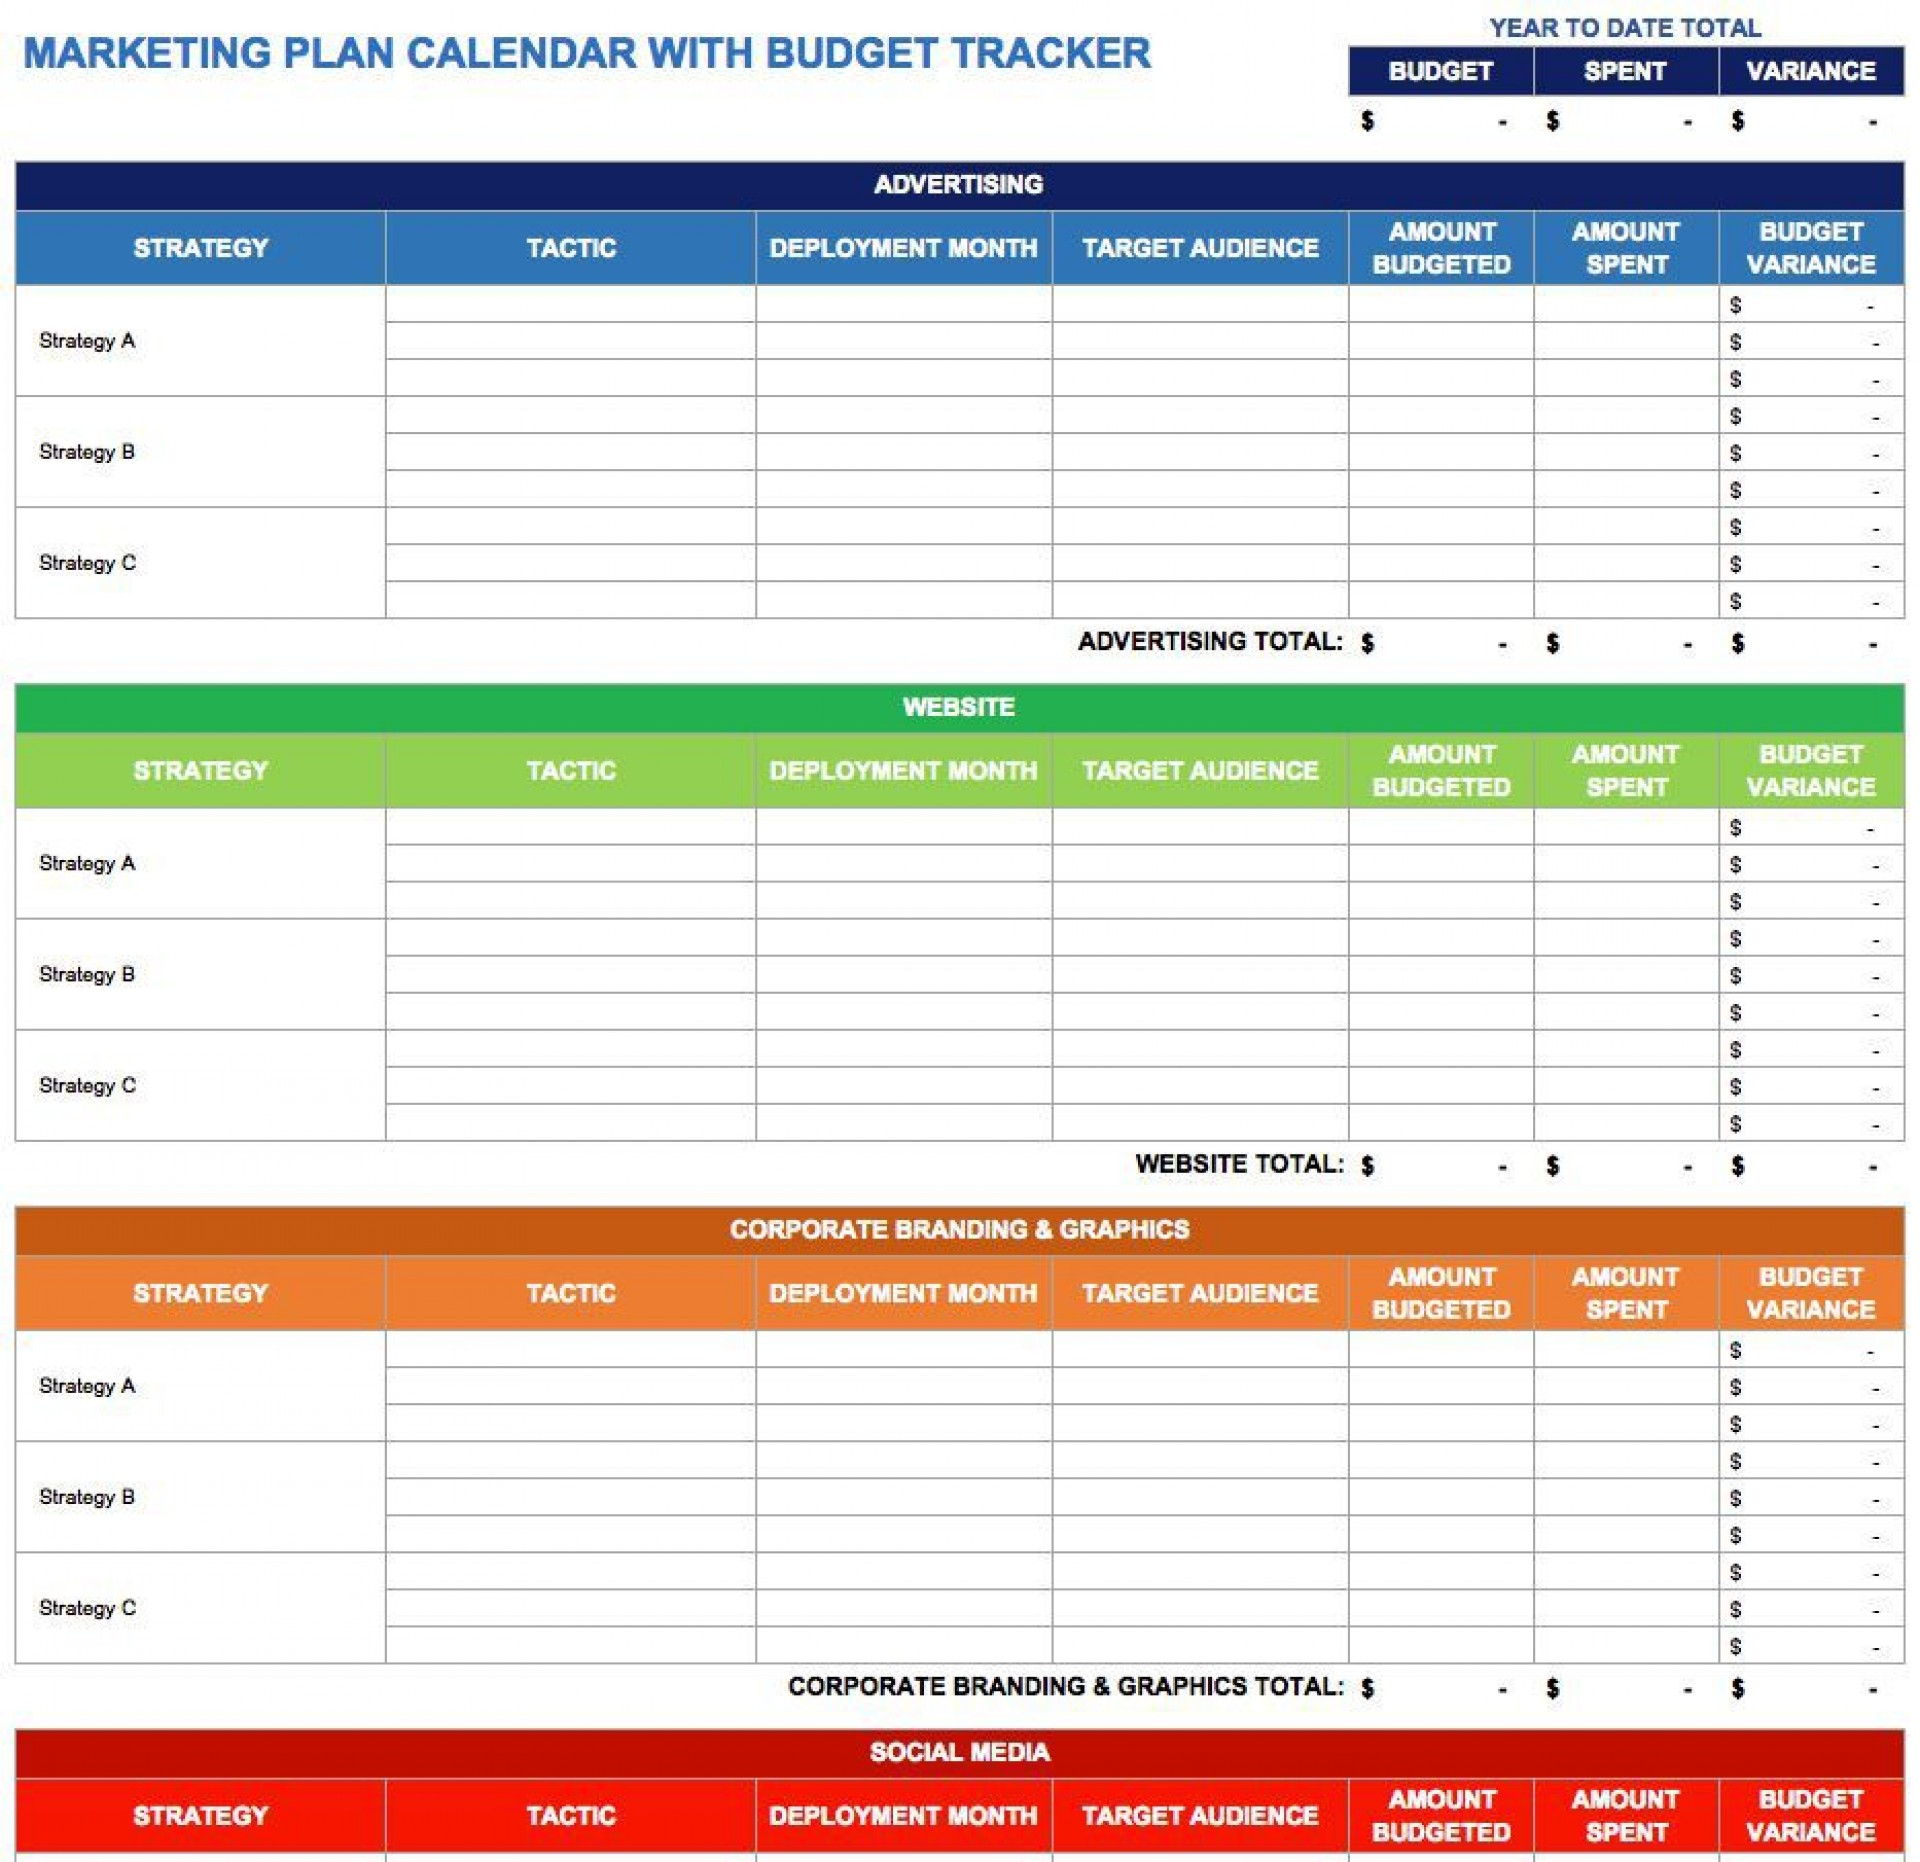 003 Excellent Marketing Campaign Plan Template Pdf Sample 1920